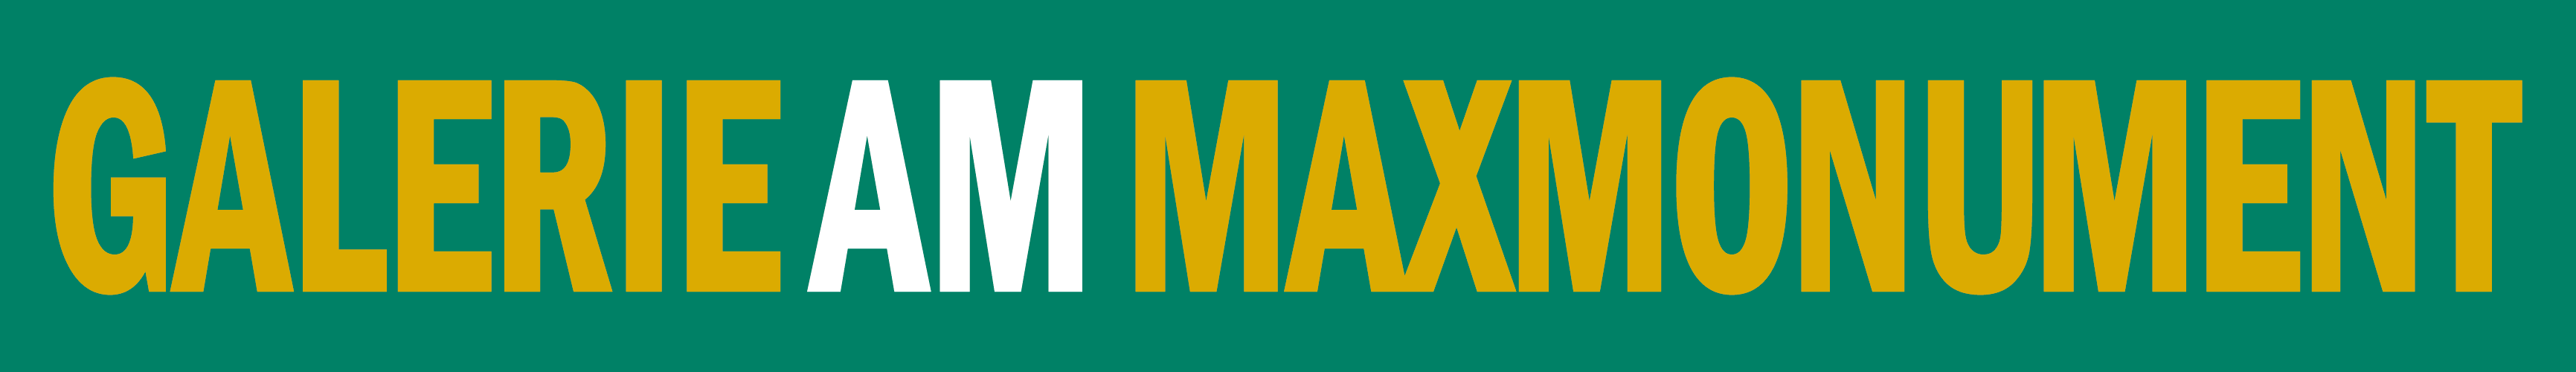 Maxmonument wordmark